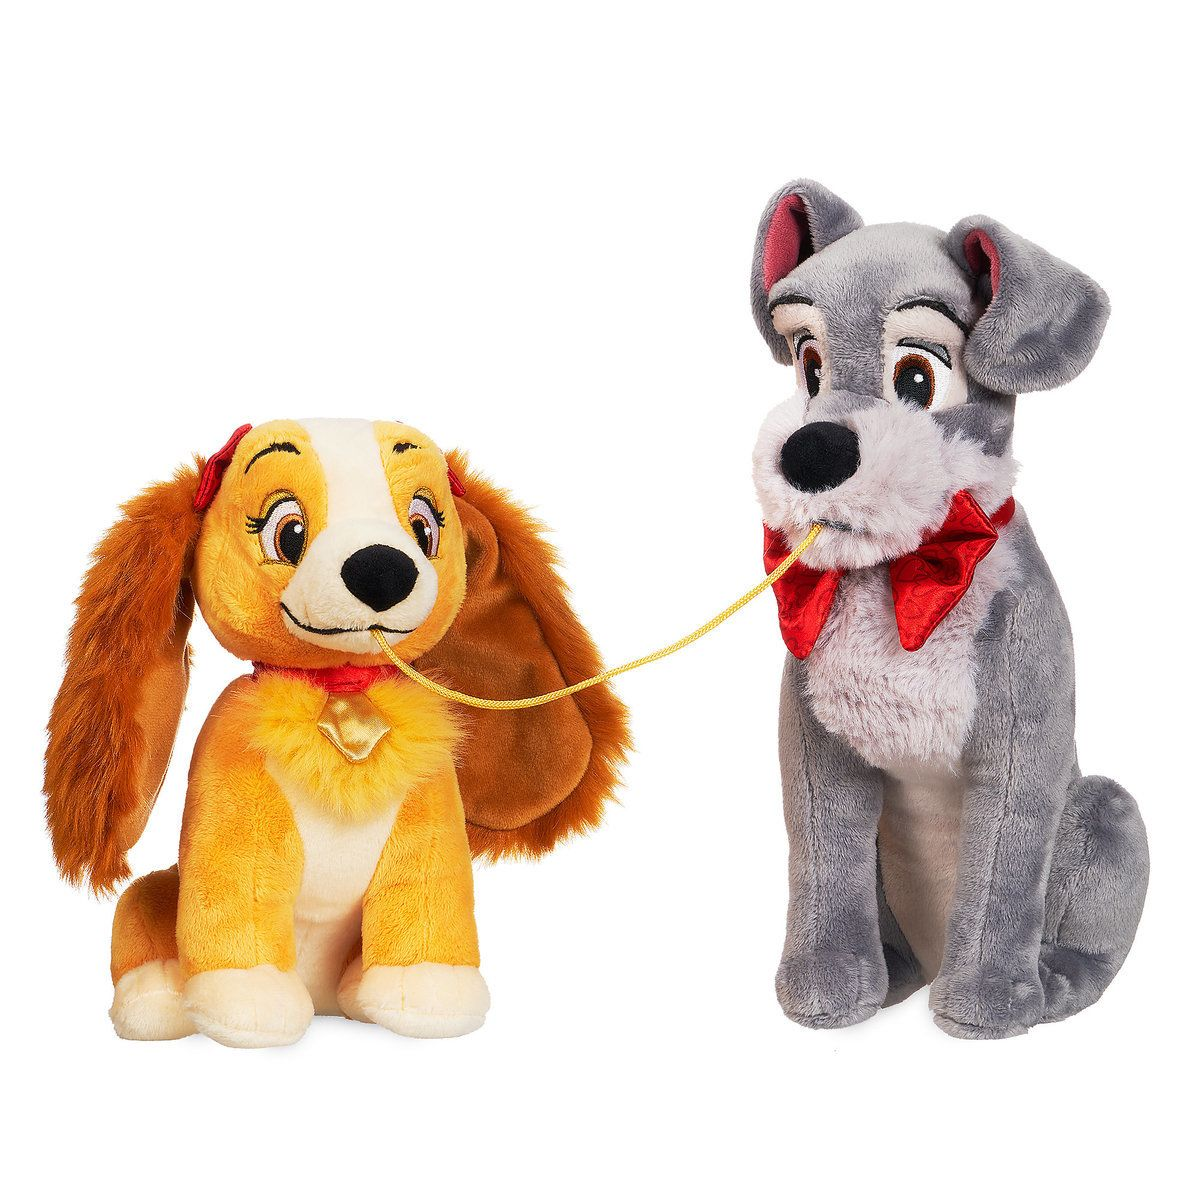 Lady And The Tramp Plush Set Valentine S Day Small Disney Stuffed Animals Cute Stuffed Animals Animal Plush Toys